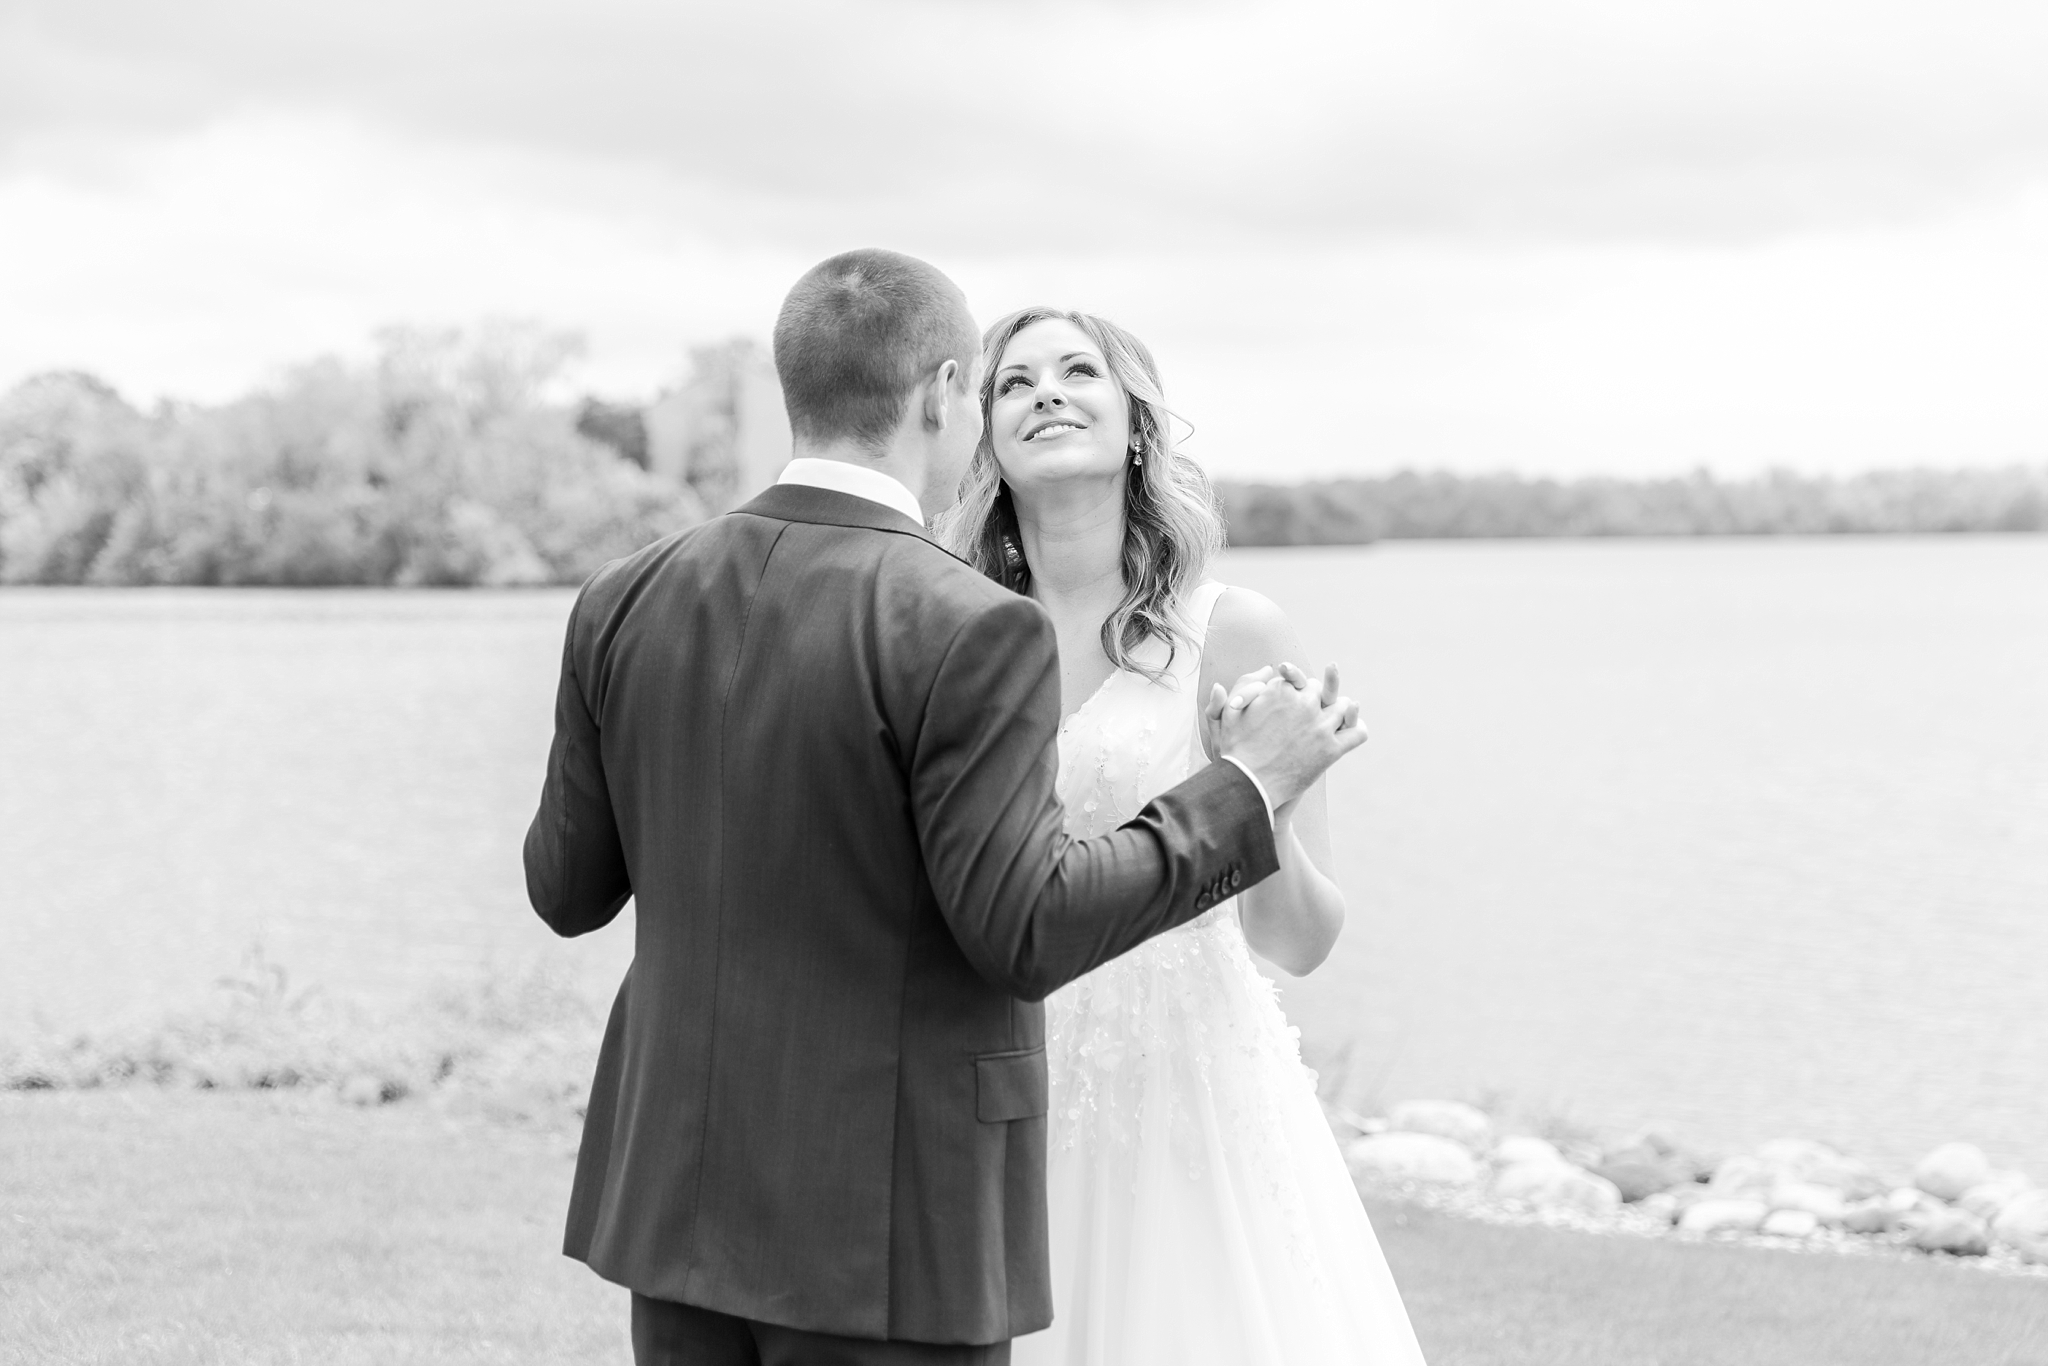 joyful-candid-laid-back-wedding-photos-in-ann-arbor-michigan-and-at-the-eagle-crest-golf-resort-by-courtney-carolyn-photography_0028.jpg